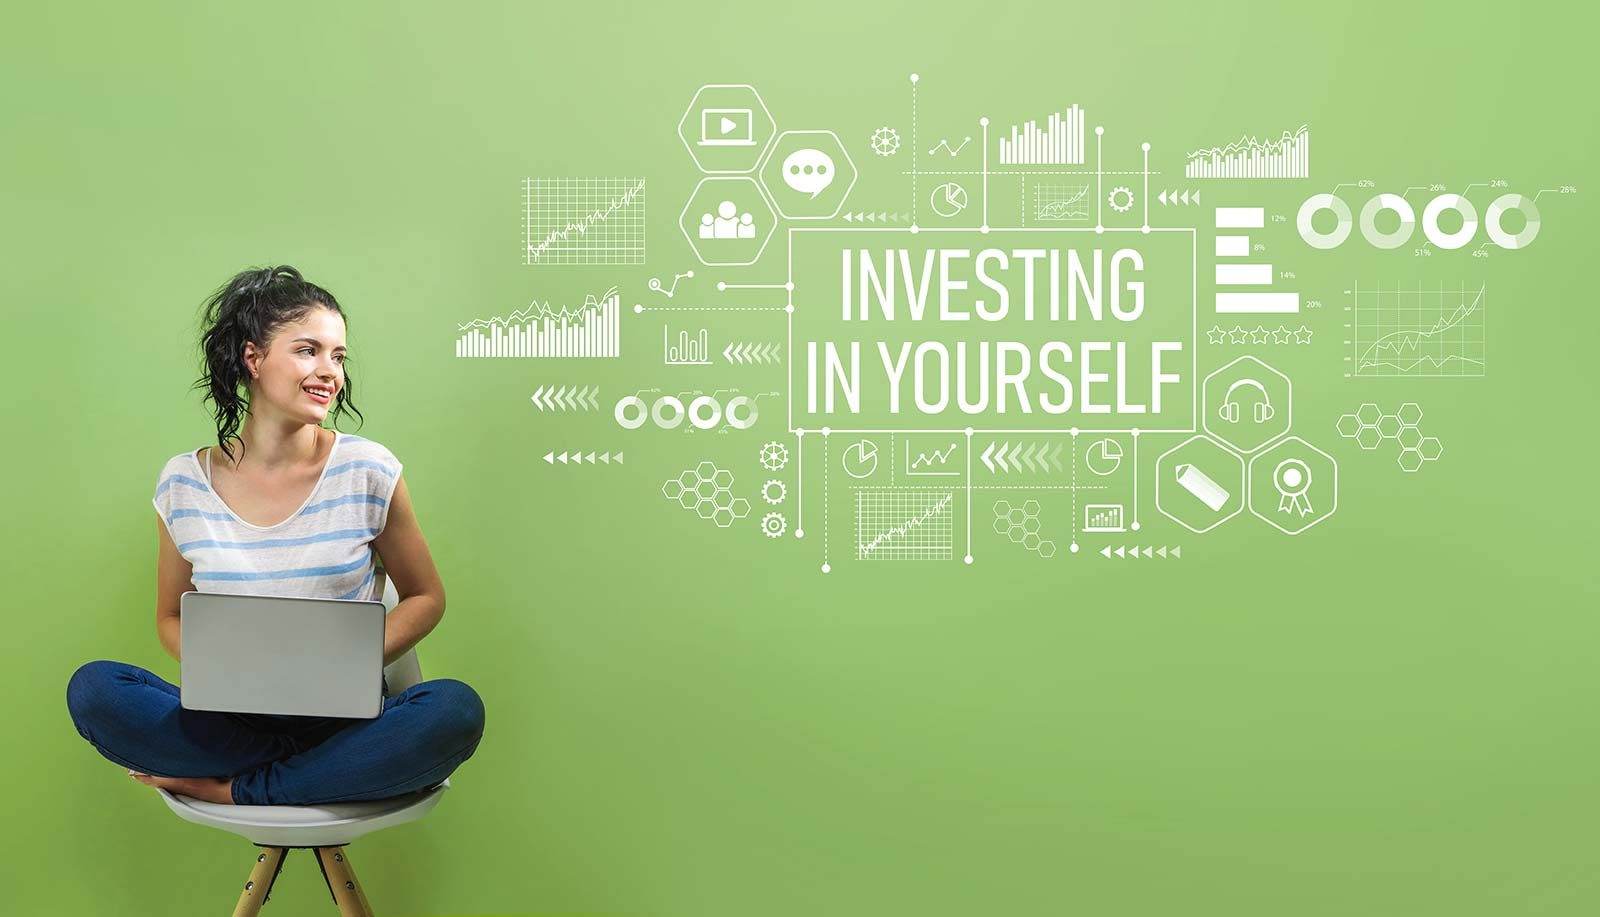 How To Use Franchise Opportunities to Invest In Yourself